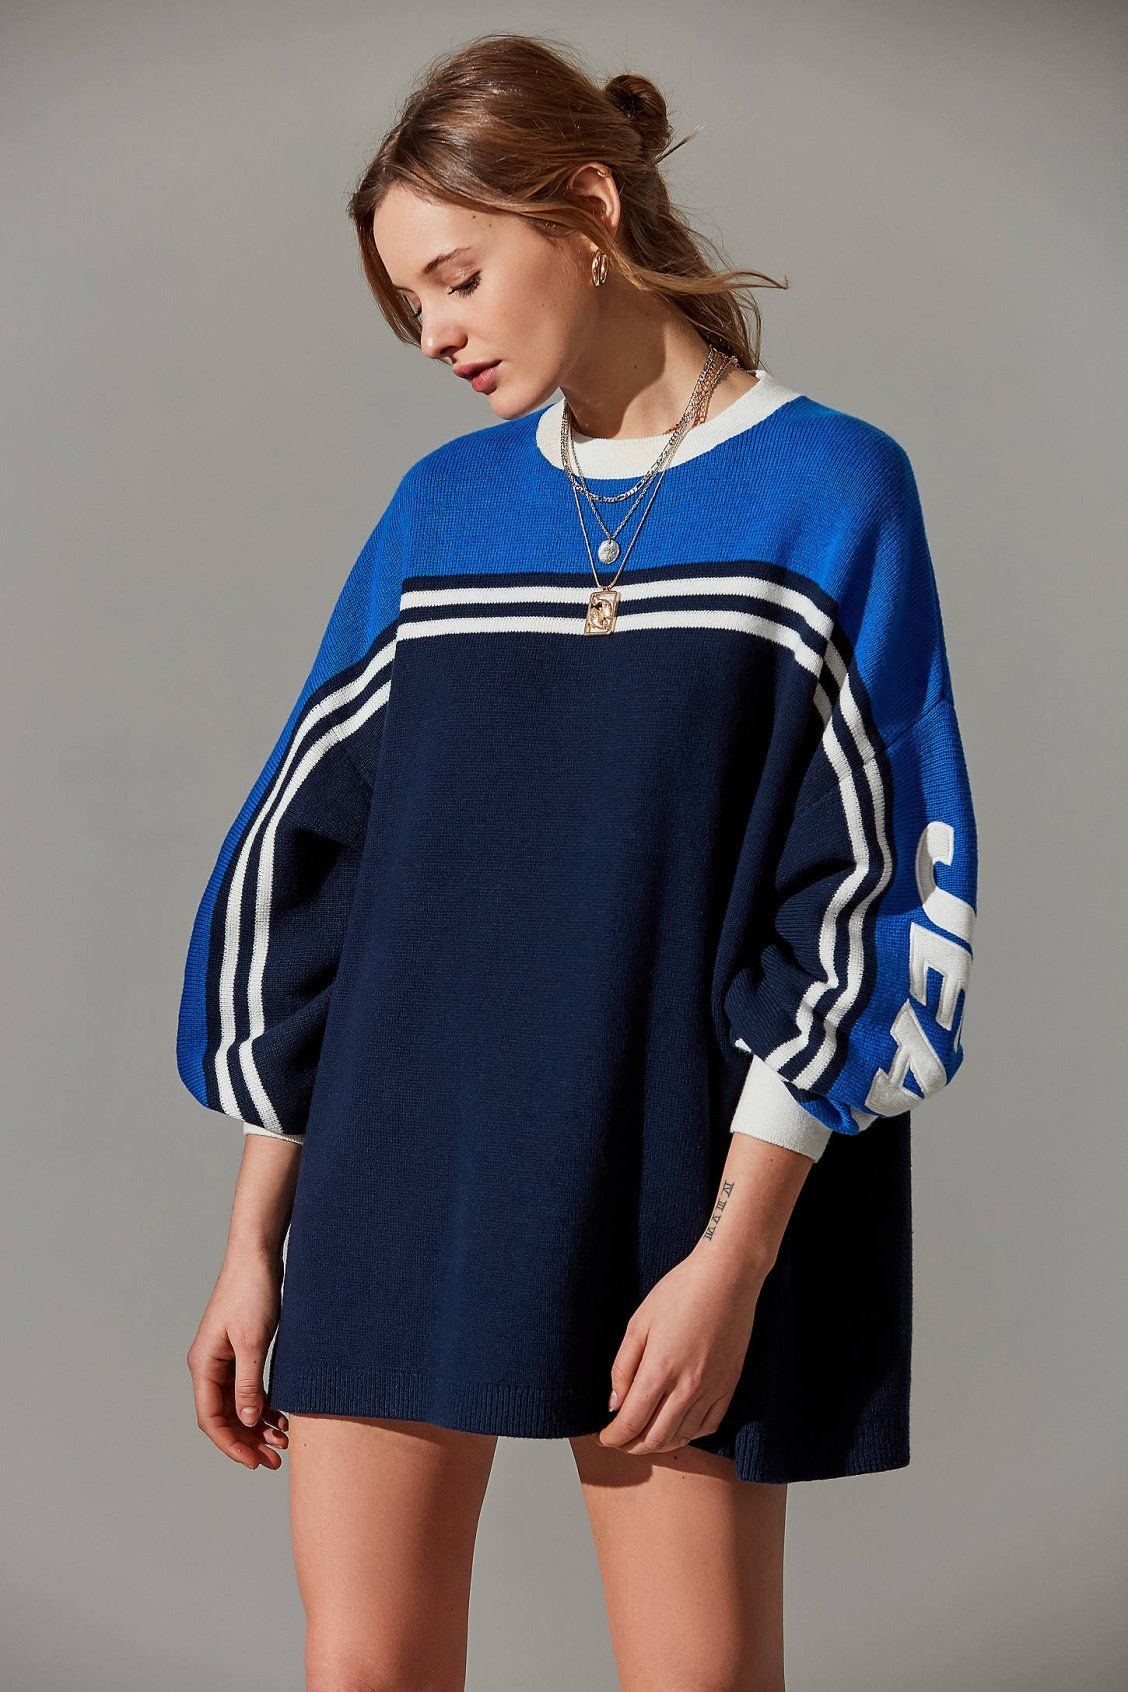 Tommy Jeans Oversized Racing Sweater   Tomboy   Jeans, Oversized ... 7846a7c4d6